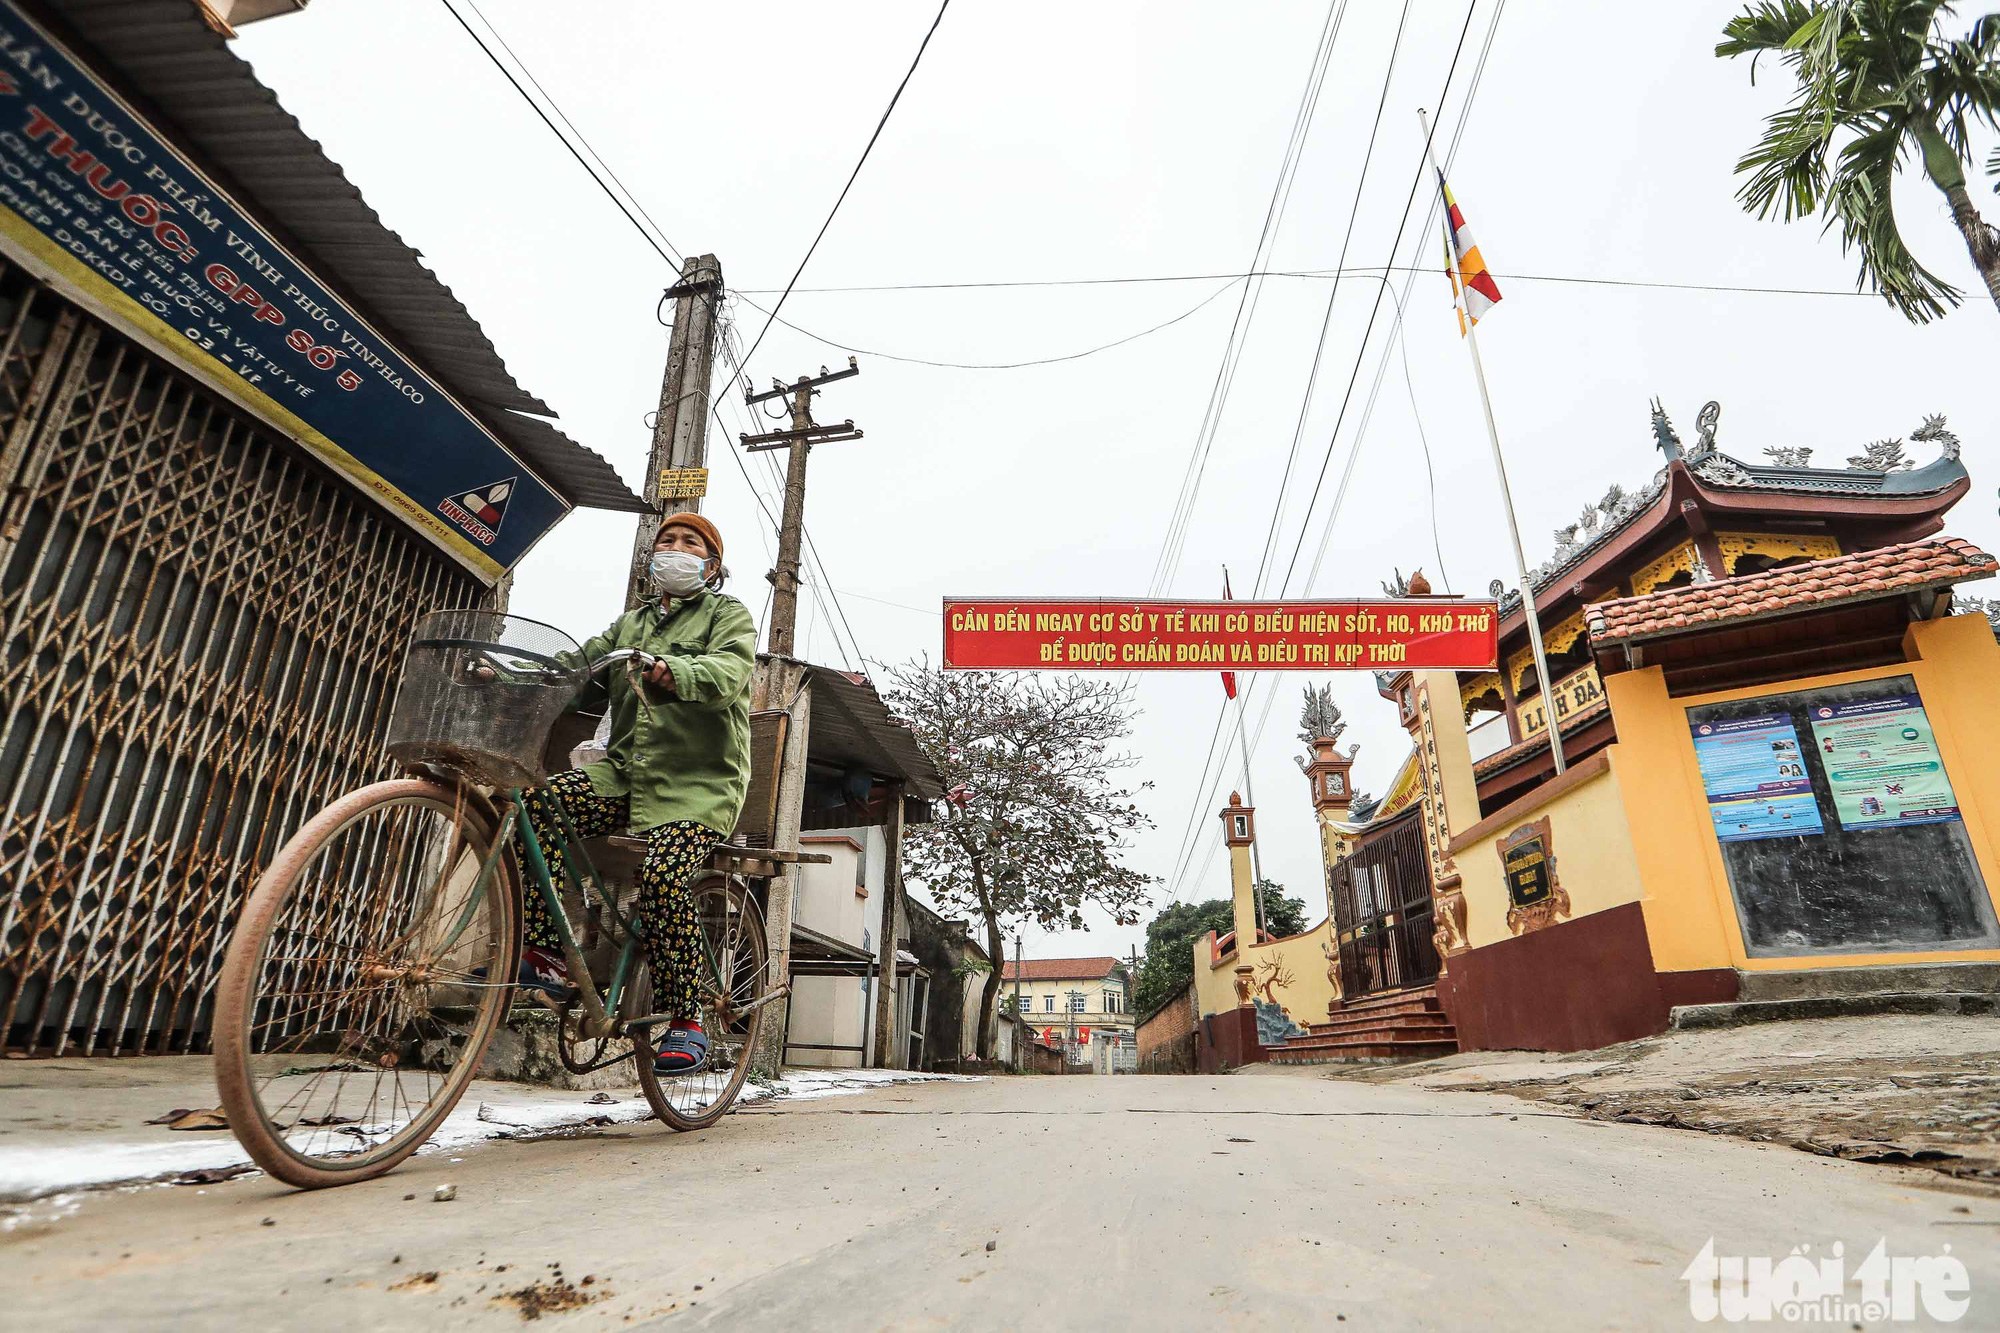 A banner with a slogan on COVID-19 prevention is hung in Ai Van village in Son Loi Commune, Binh Xuyen District, Vinh Phuc Province, Vietnam in this photo taken on February 11, 2020. Photo: Nguyen Khanh / Tuoi Tre